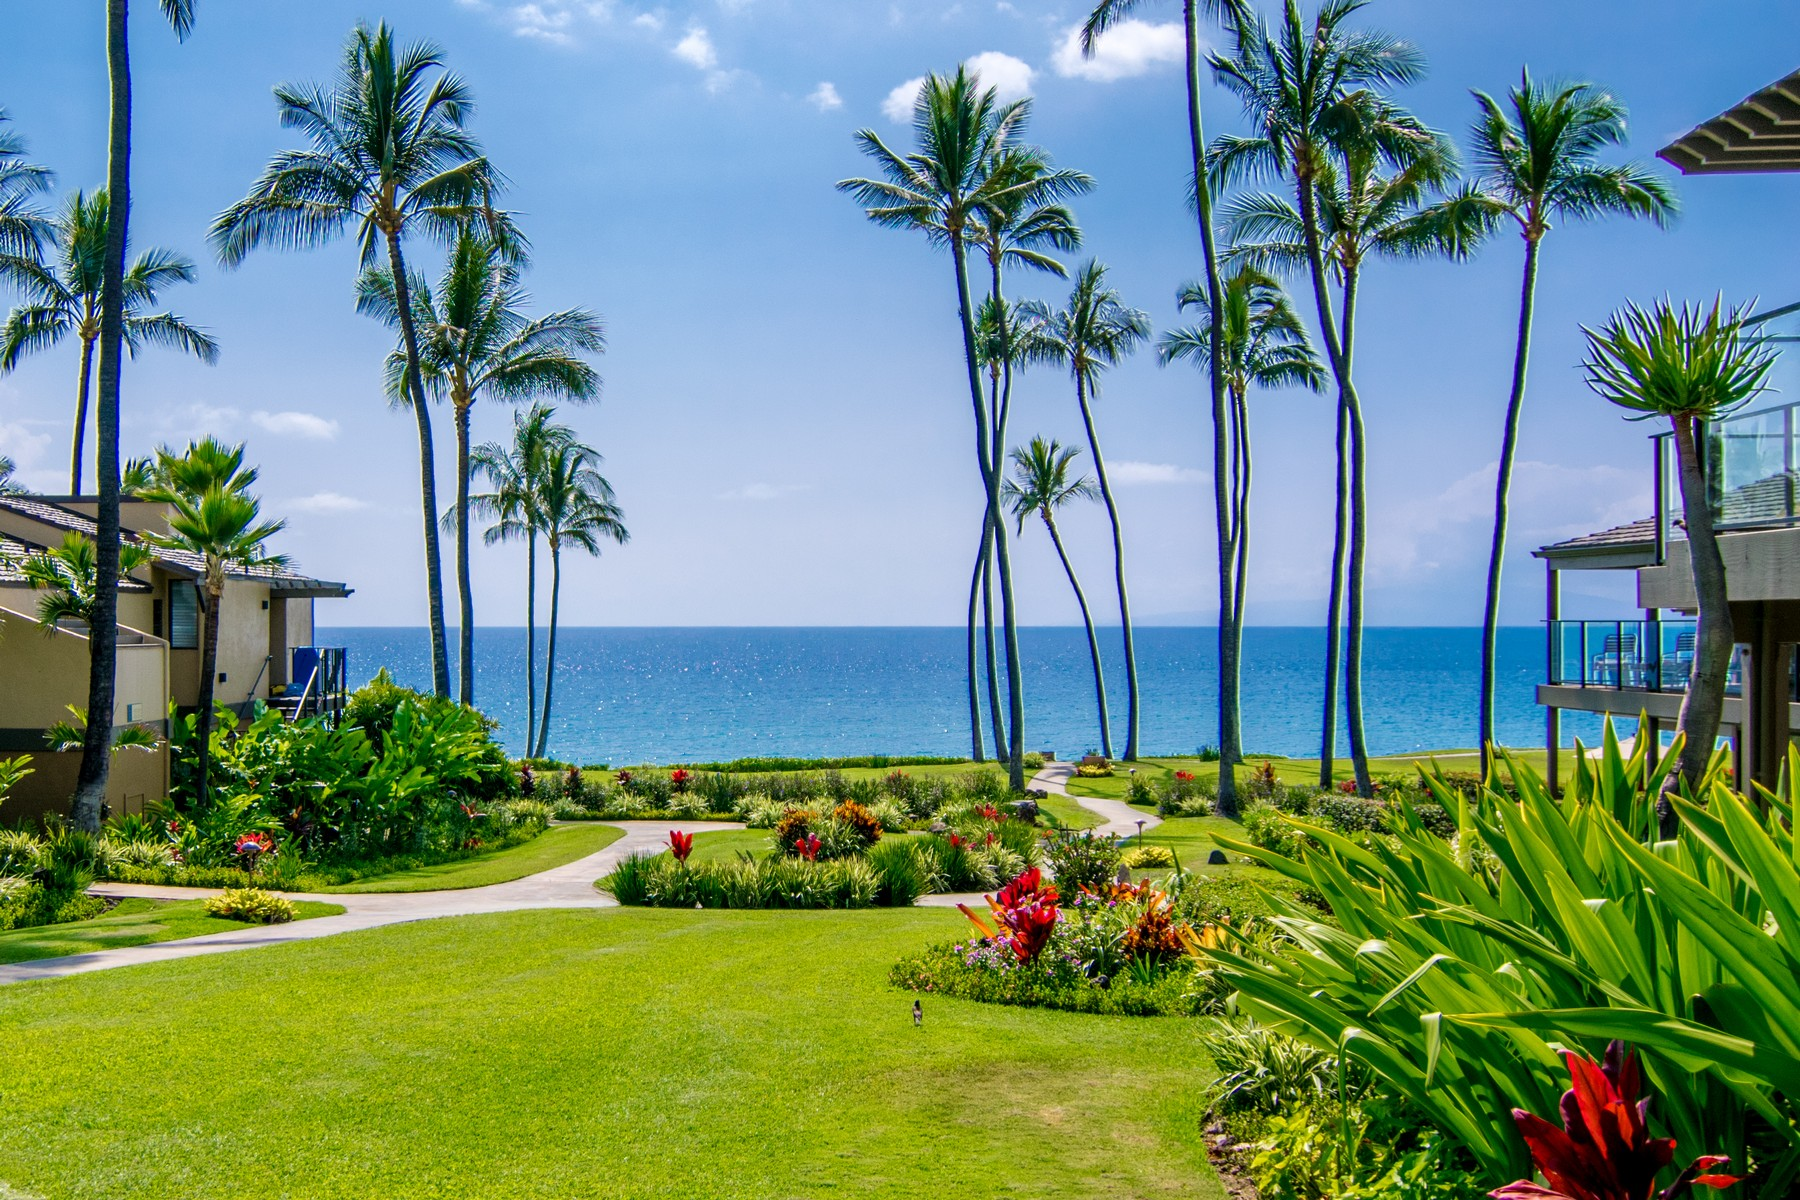 Appartement en copropriété pour l Vente à First One Bedroom Wailea Elua Oceanfront Condo in 9 Years! 3600 Wailea Alanui Drive, Wailea Elua 1401 Wailea, Hawaii, 96753 États-Unis